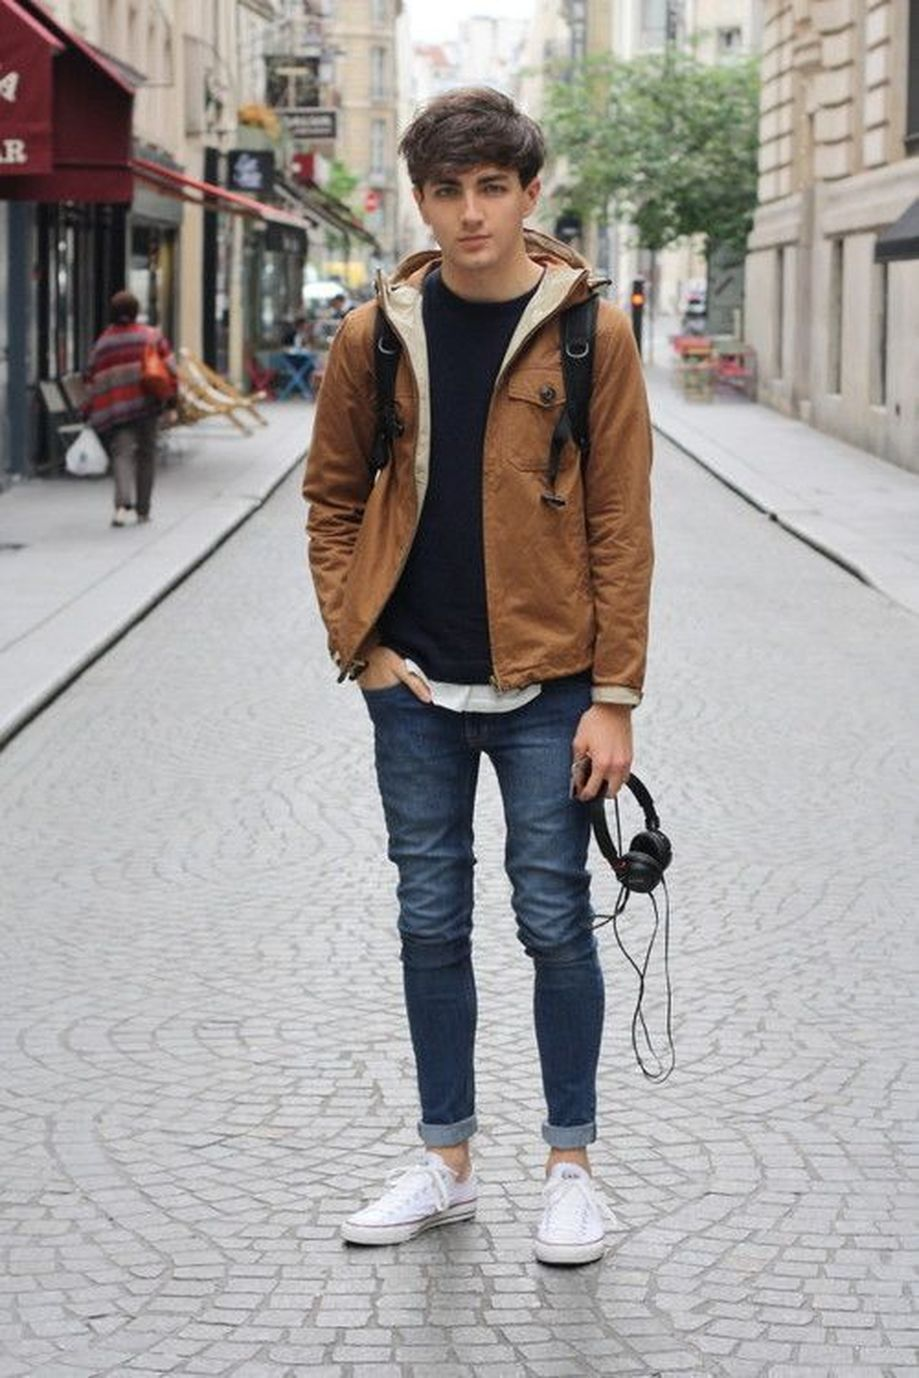 Watch 15 Spring Street Style Outfits From New York: Slip-On Sneakers, Faded Denim,More video